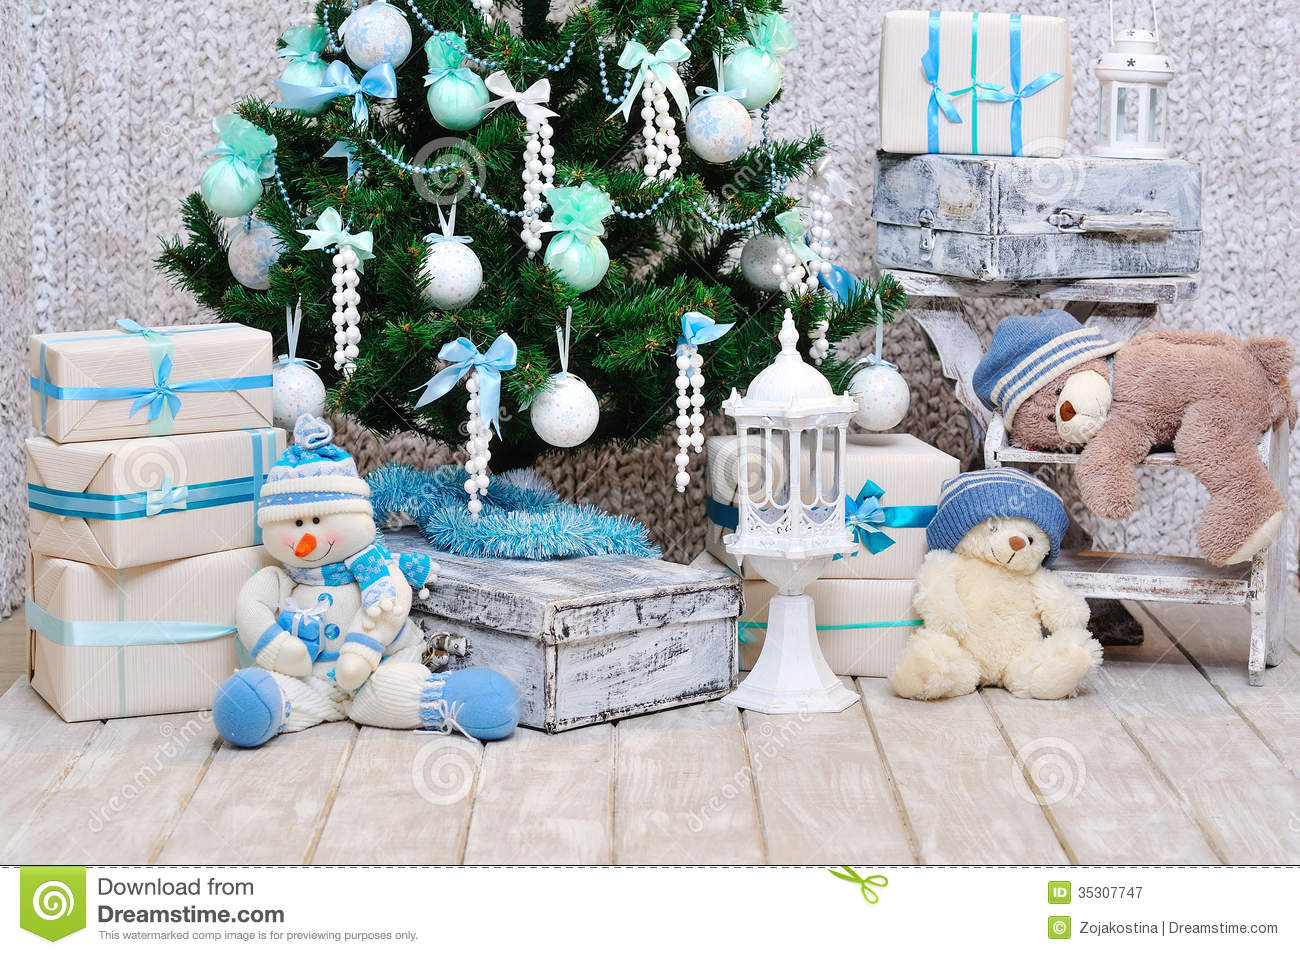 Deko In Mint Christmas Room Decoration In Blue And Mint Colors Royalty